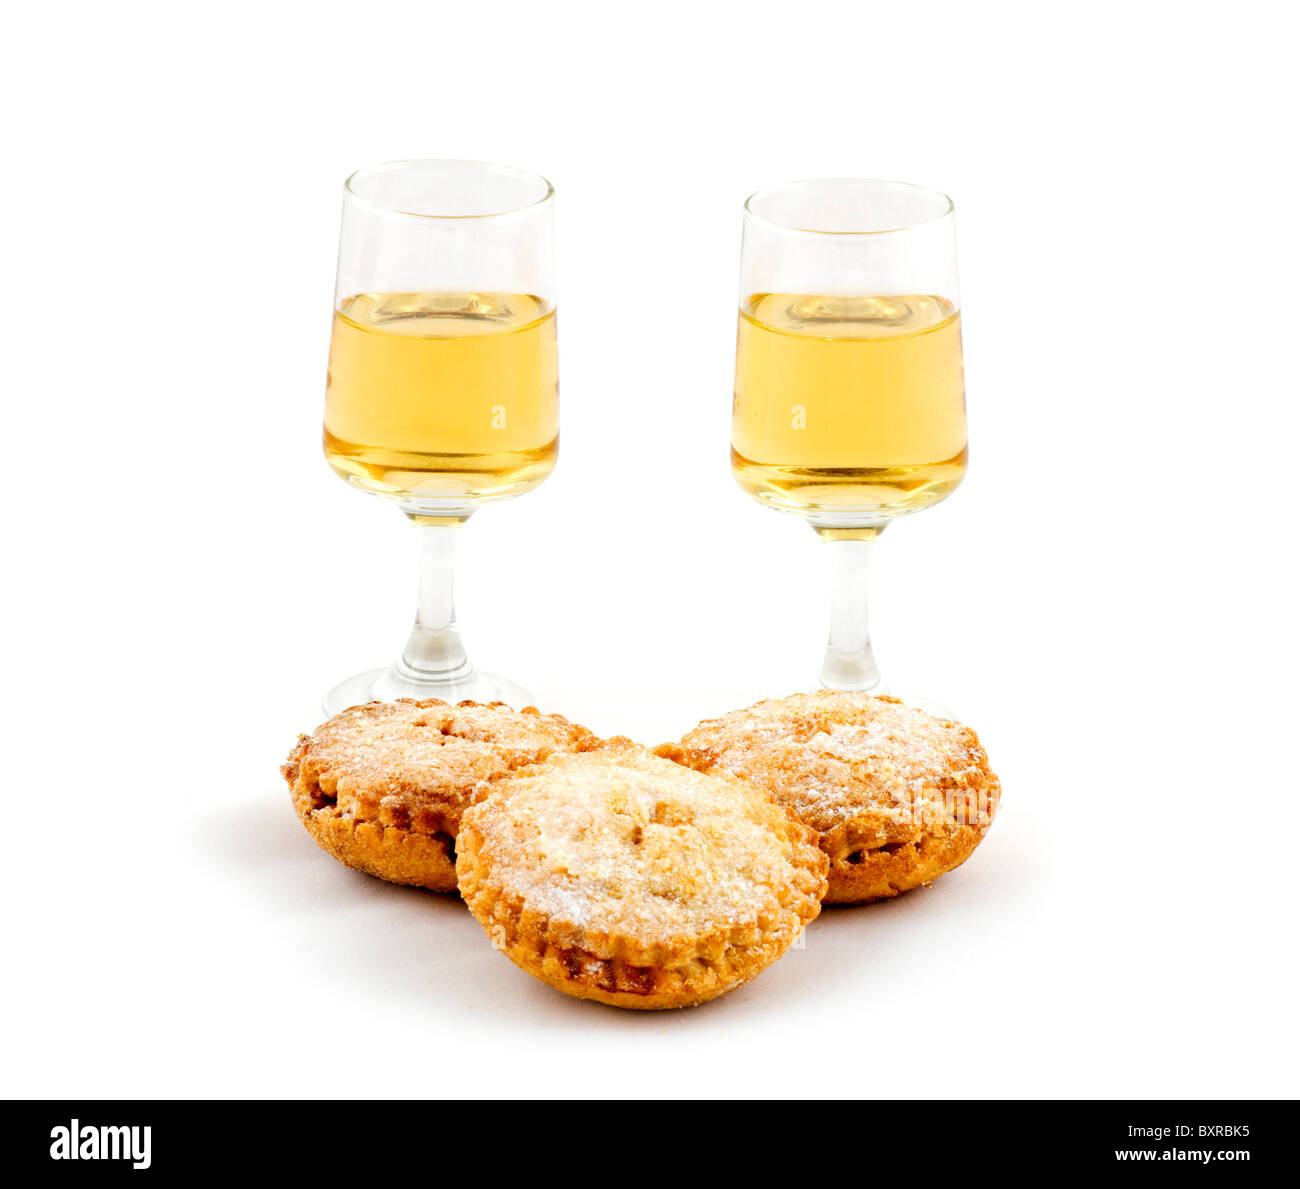 Homemade Mince Pies and two glasses of Amontillado Sherry, UK - Stock Image